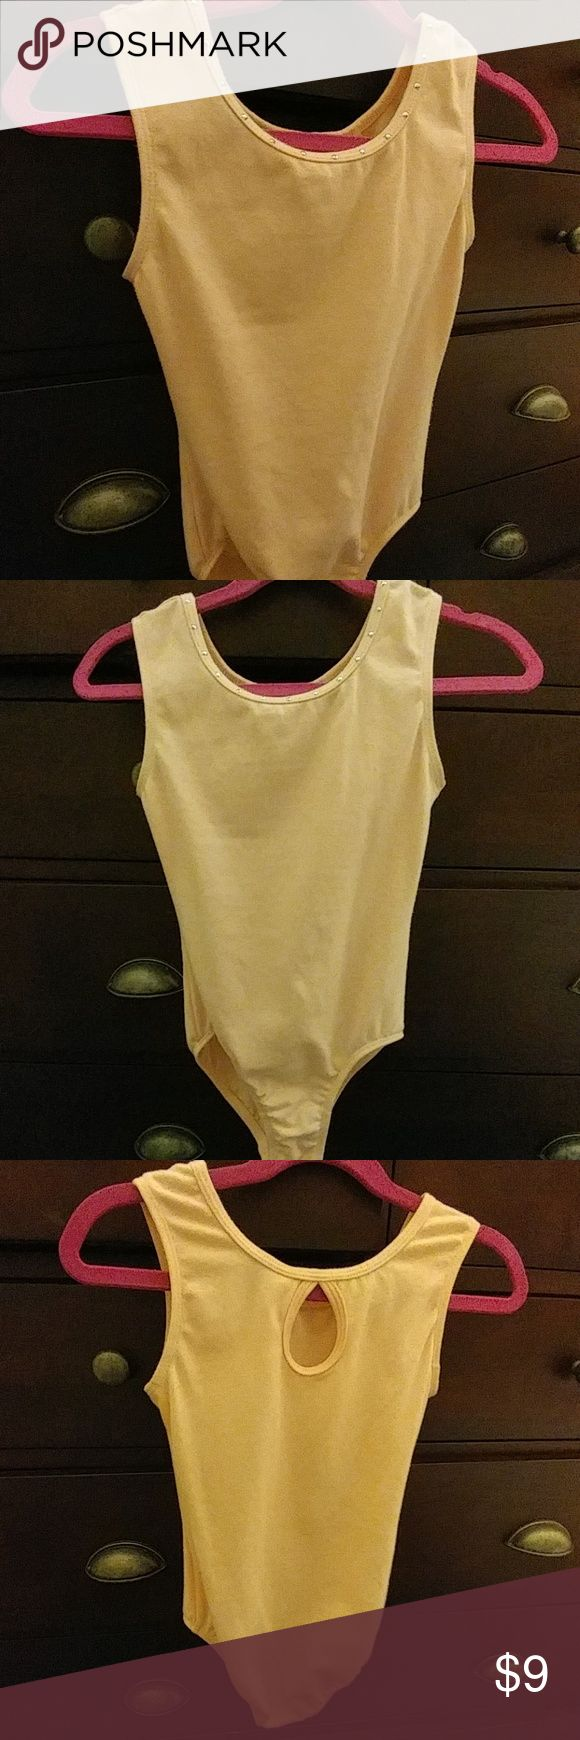 Danskin freestyle ballet pink leotard Kids 6/6X Very light wear.  No stains.  Color is ballet pink/pale pink.  True to size.  Small rhinstones like grommets across neckline (intact and not loose).  Keyhole back. No buttons or clasps. Always hand washed, dry flat.  Smoke/pet/perfume free home. Danskin Costumes Dance